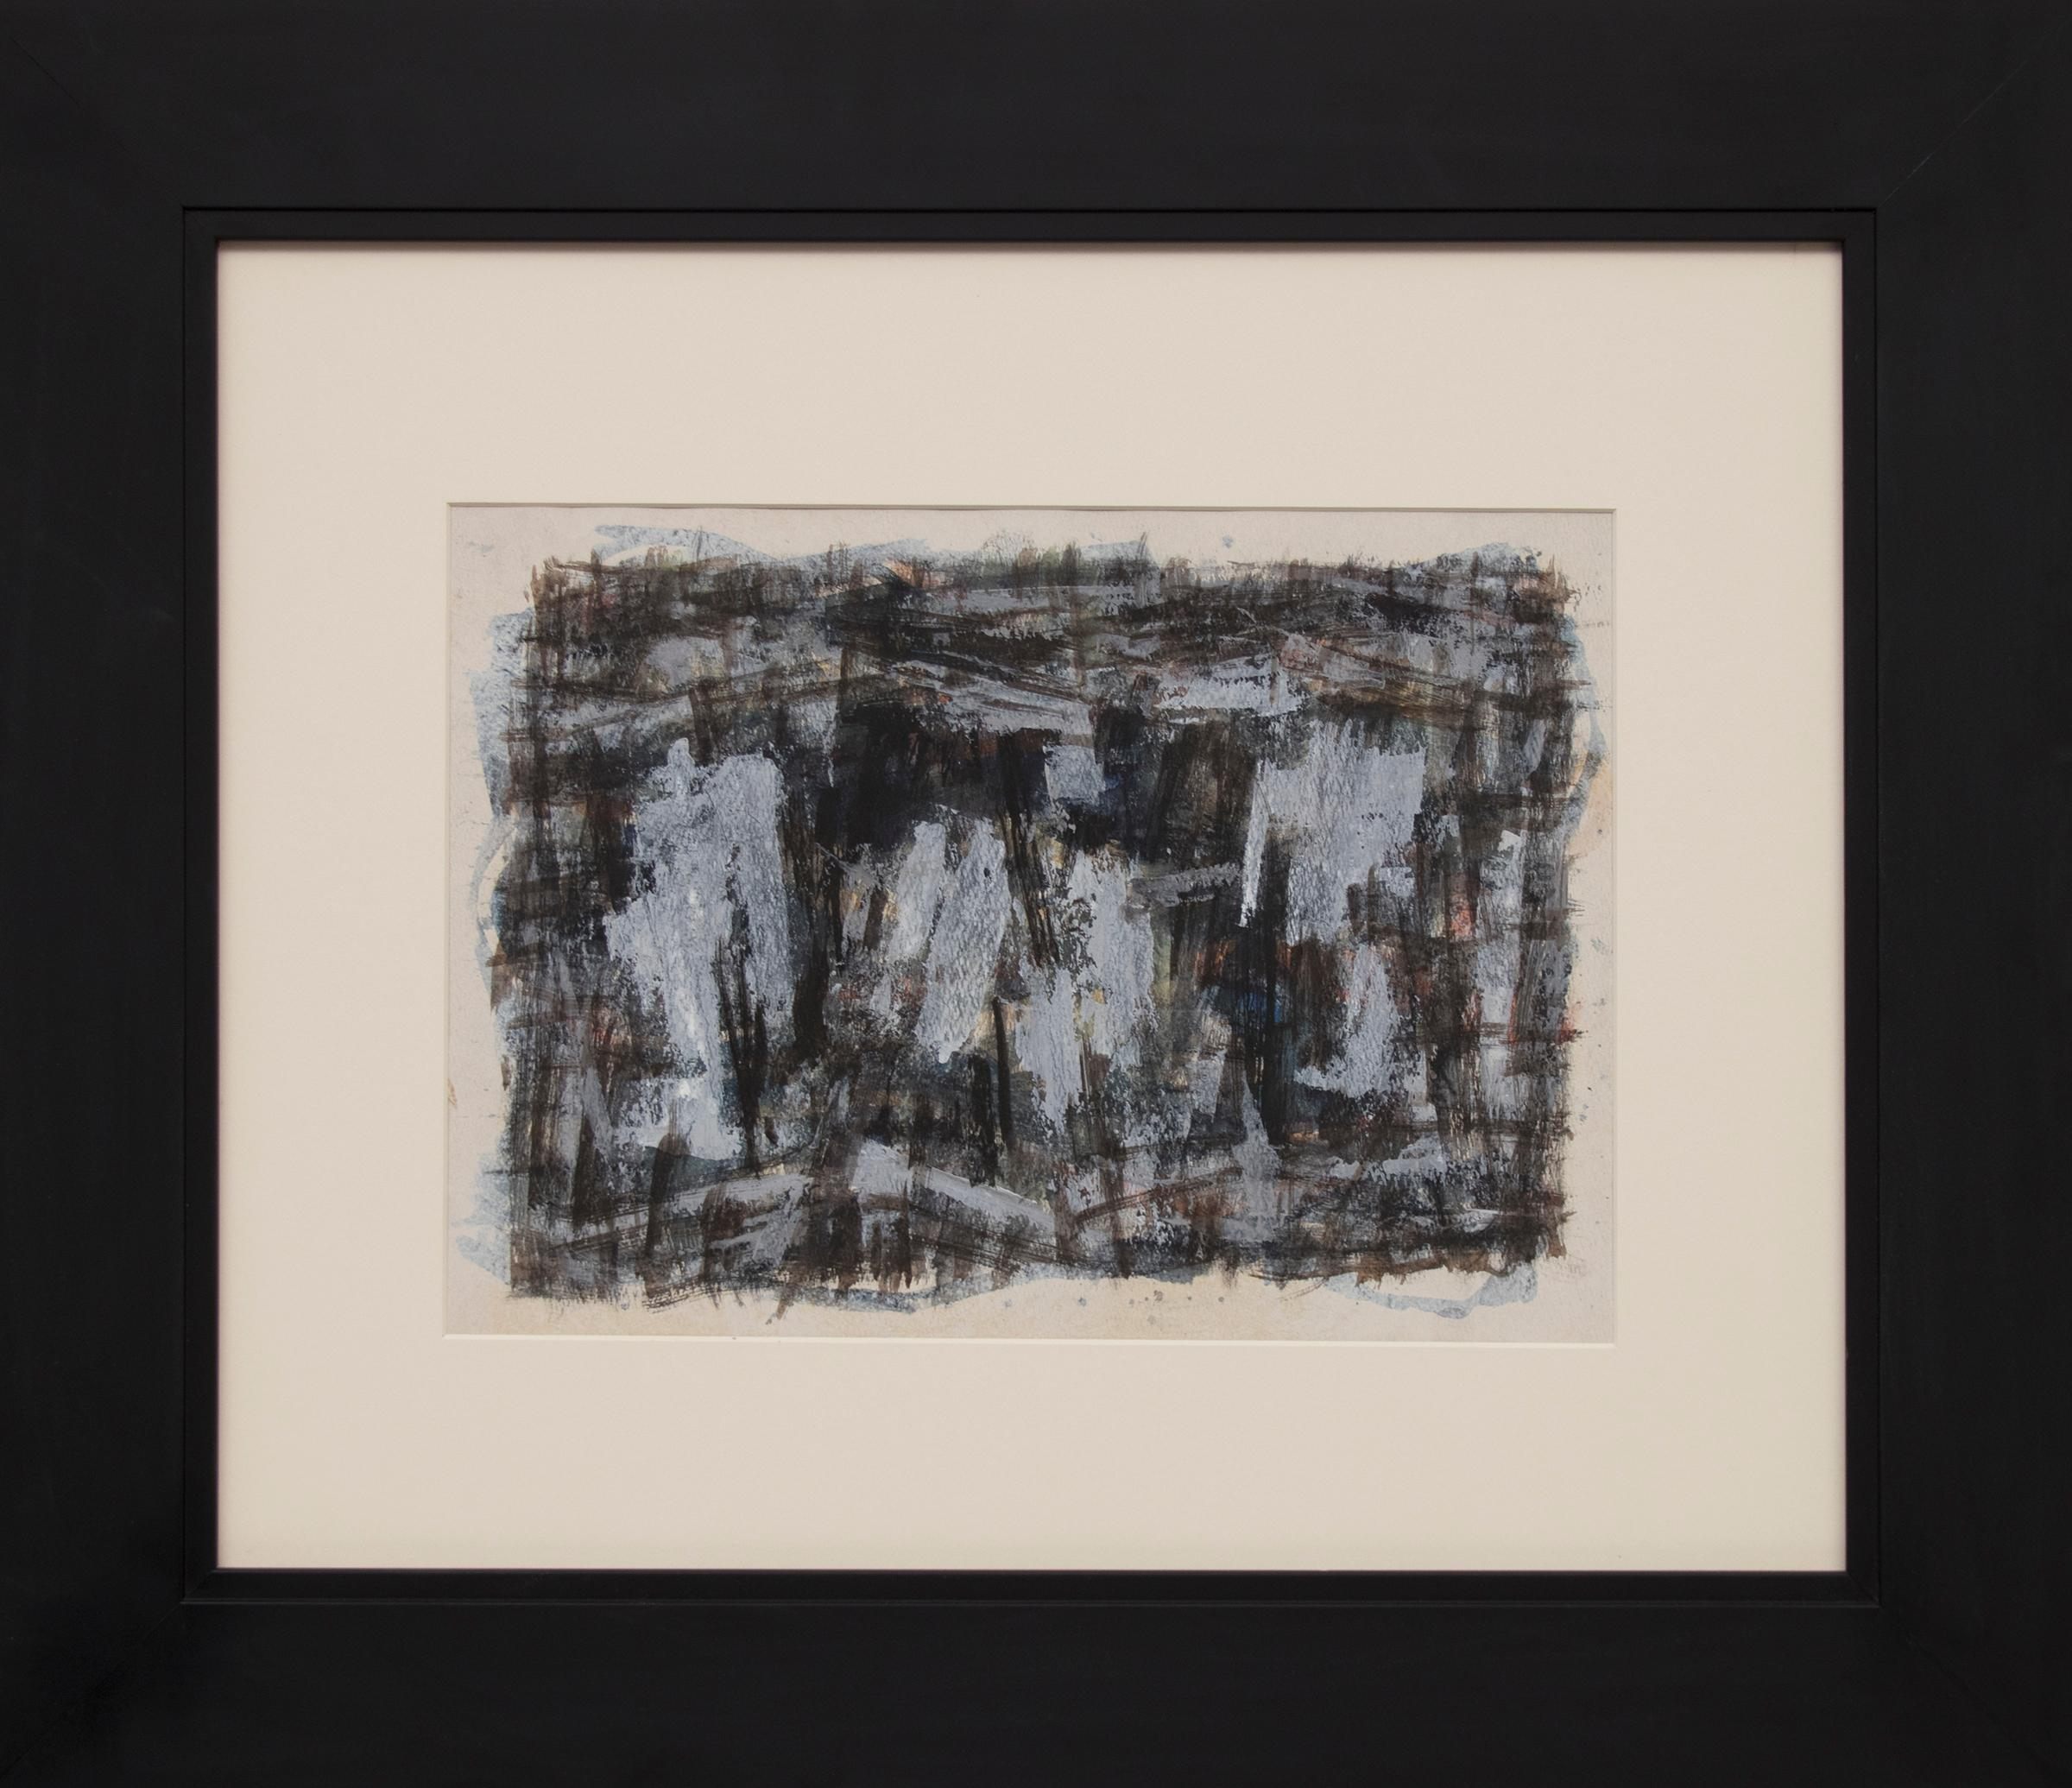 Untitled (1950s Abstract: Soft Gray, Brown, Blue, White, Black, Yellow & Orange)